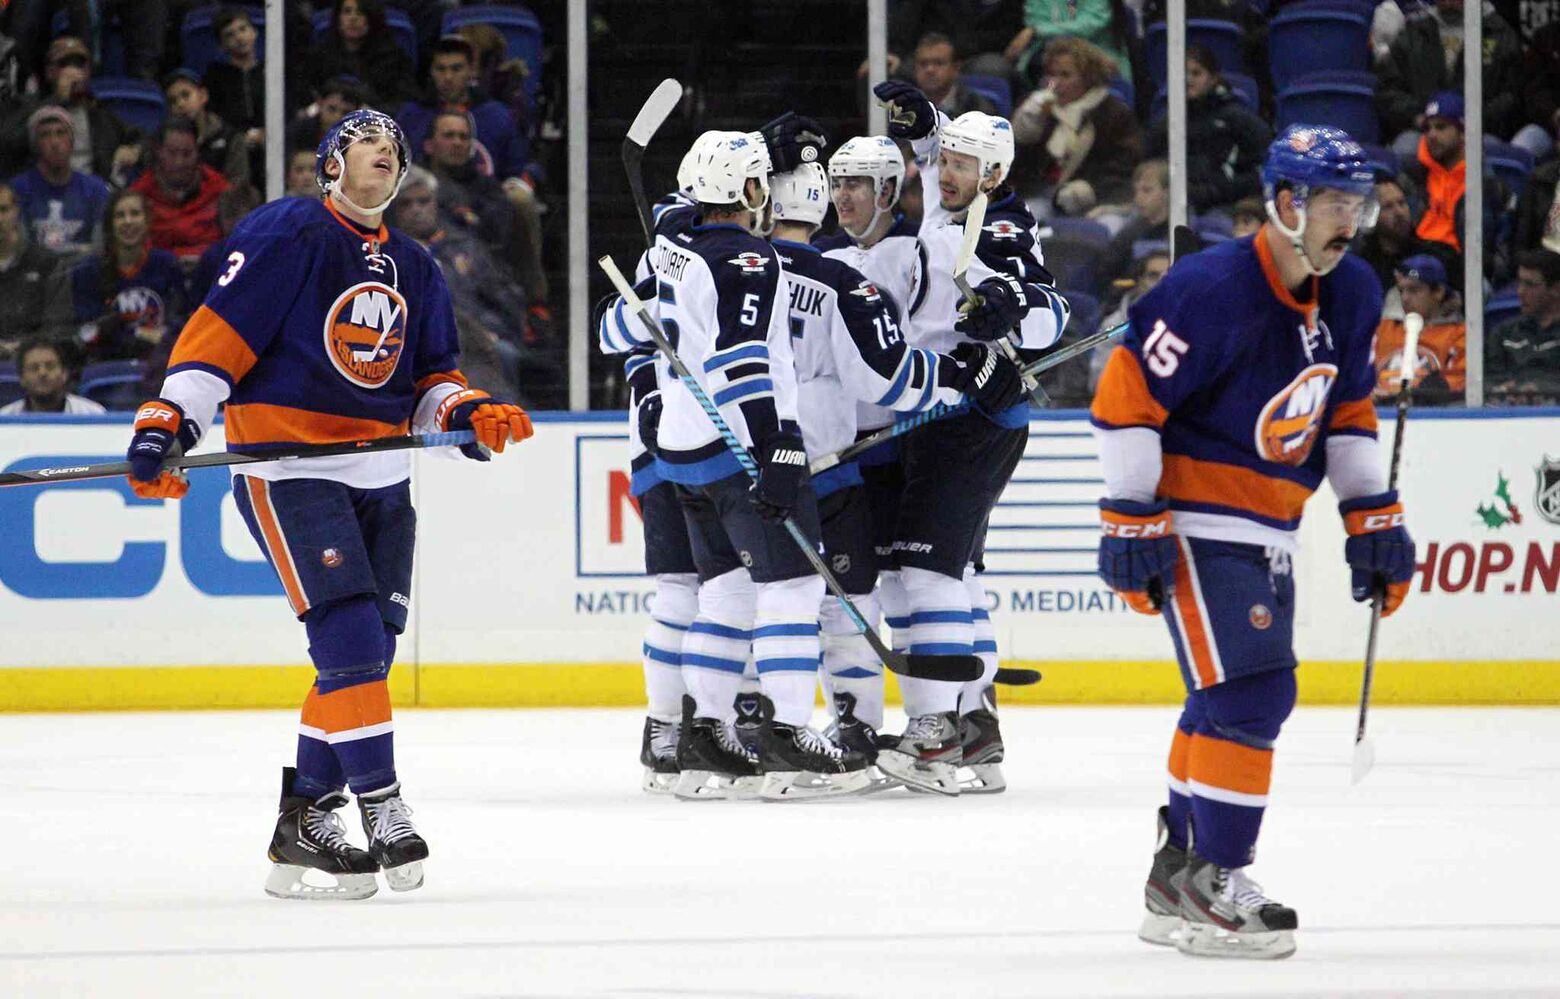 The Winnipeg Jets celebrate a goal during the second period. (Brad Penner / USA TODAY Sports)